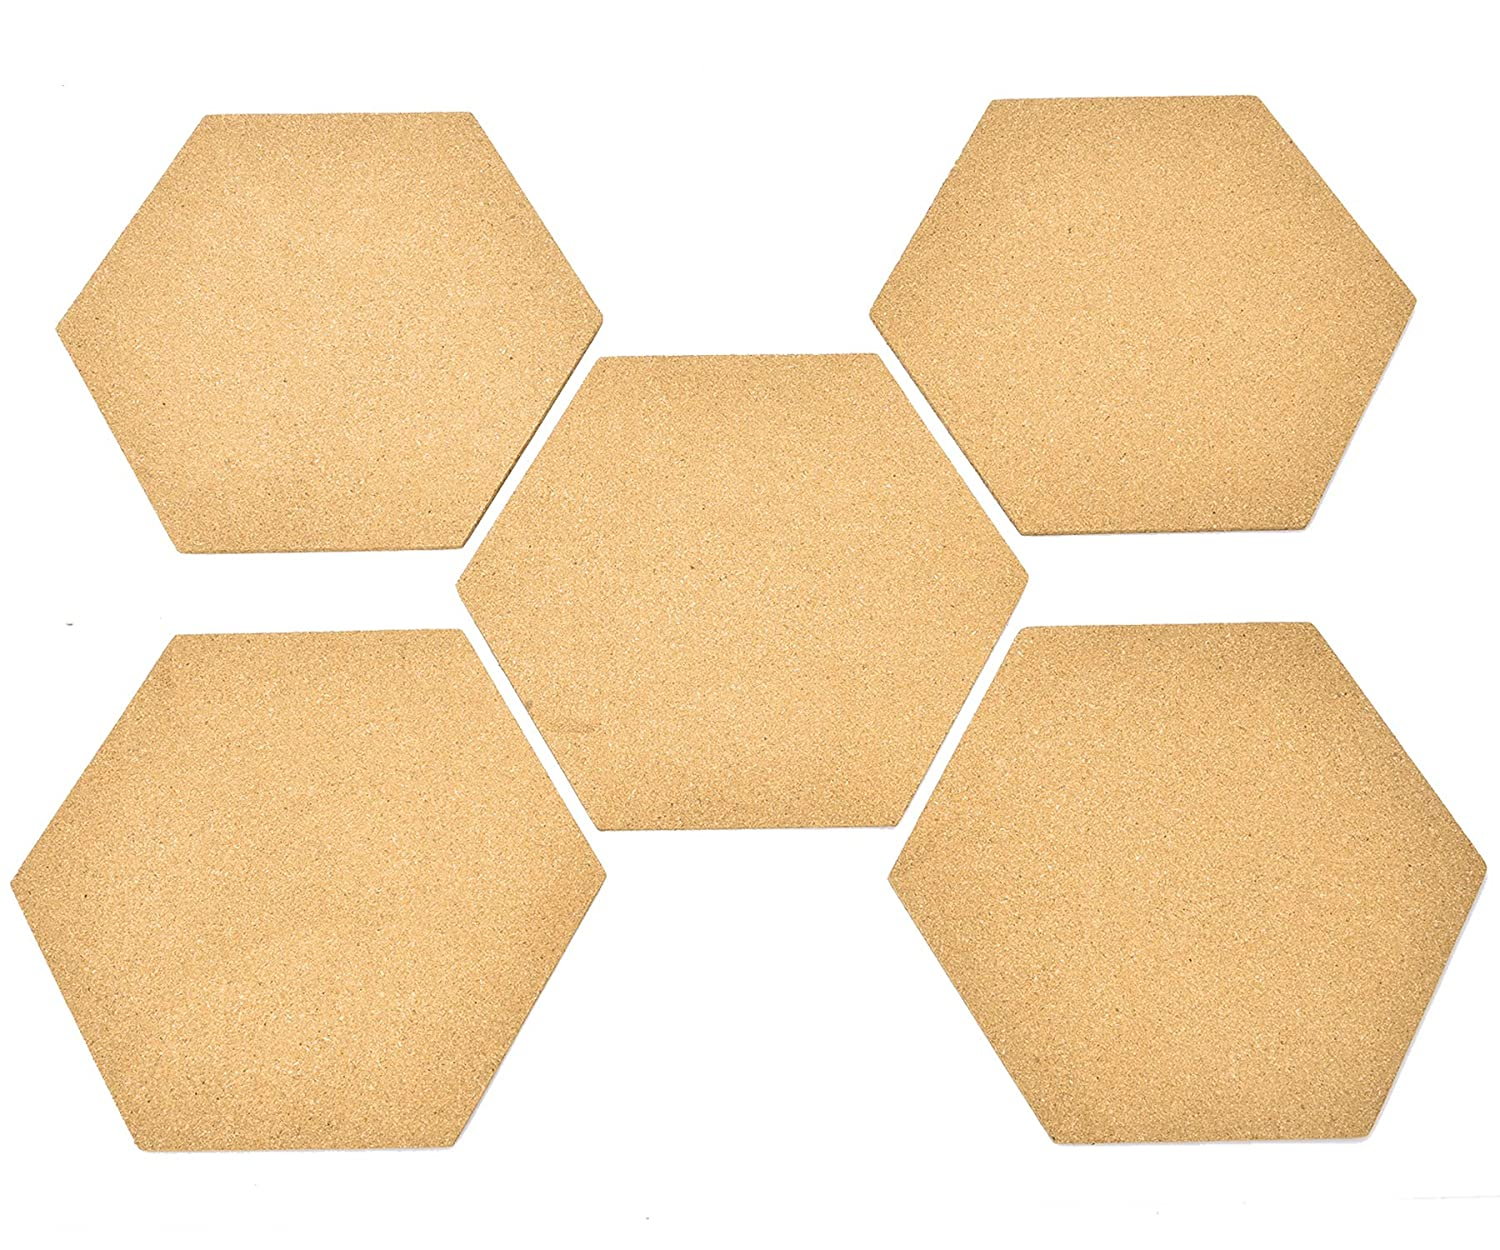 Amazon.com : 5 Pack Hexagon Cork Board Tiles with Adhesive - Buytra ...